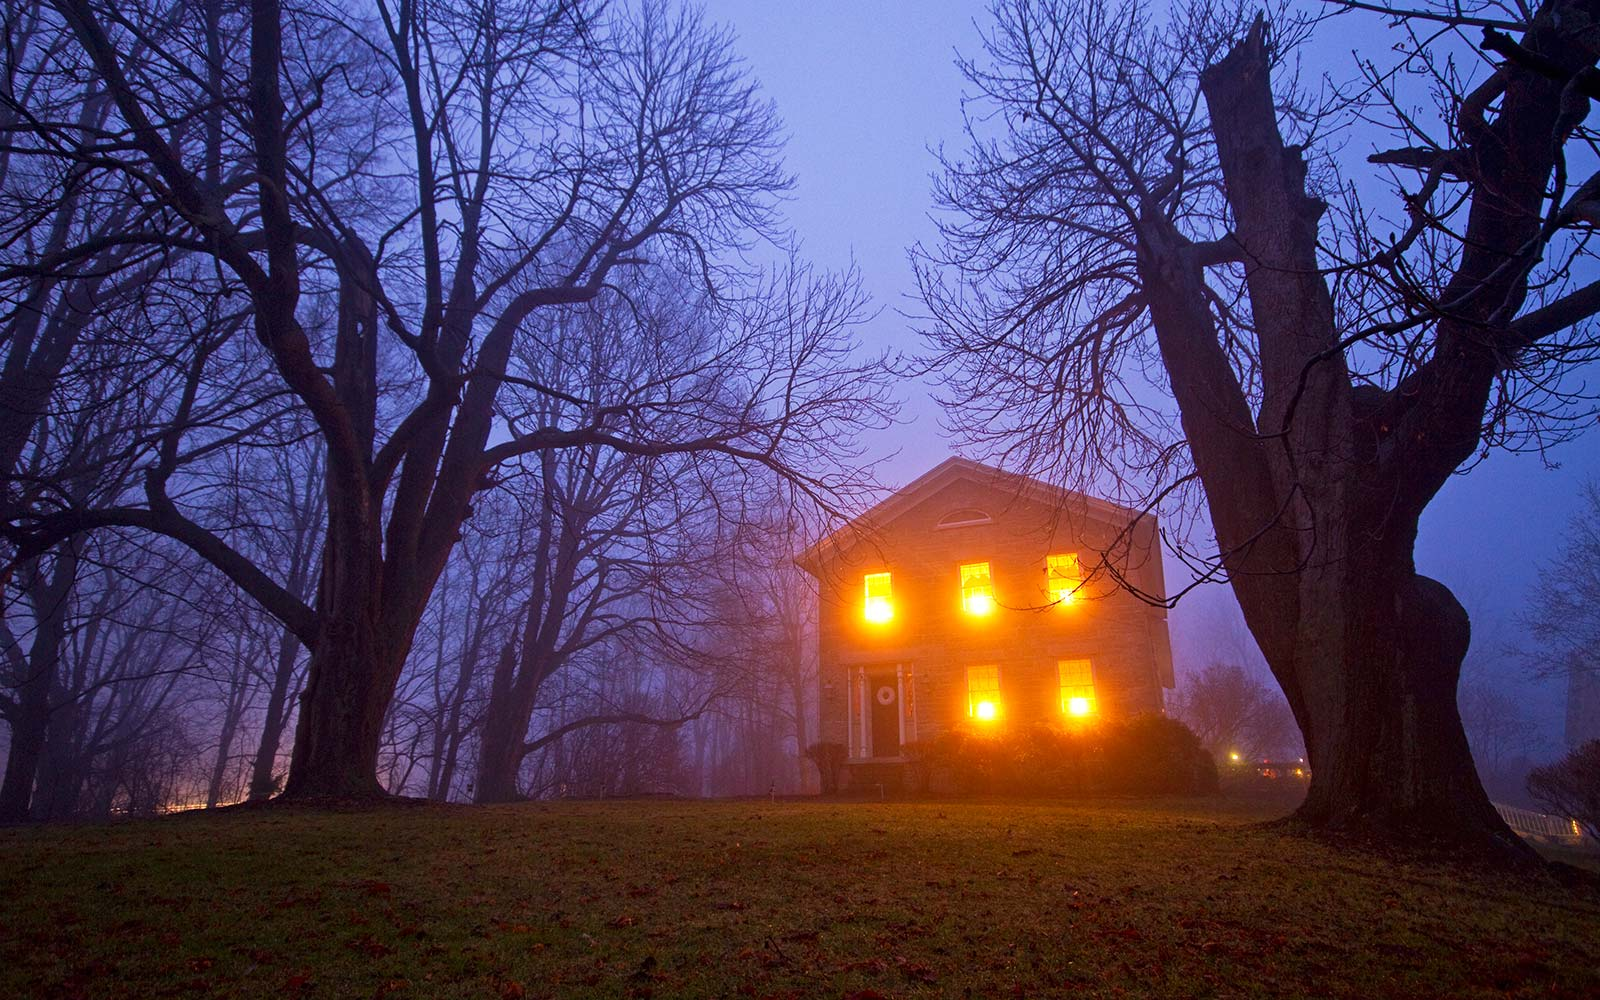 The Most Common Paranormal Beliefs in America, From Ghosts to Aliens